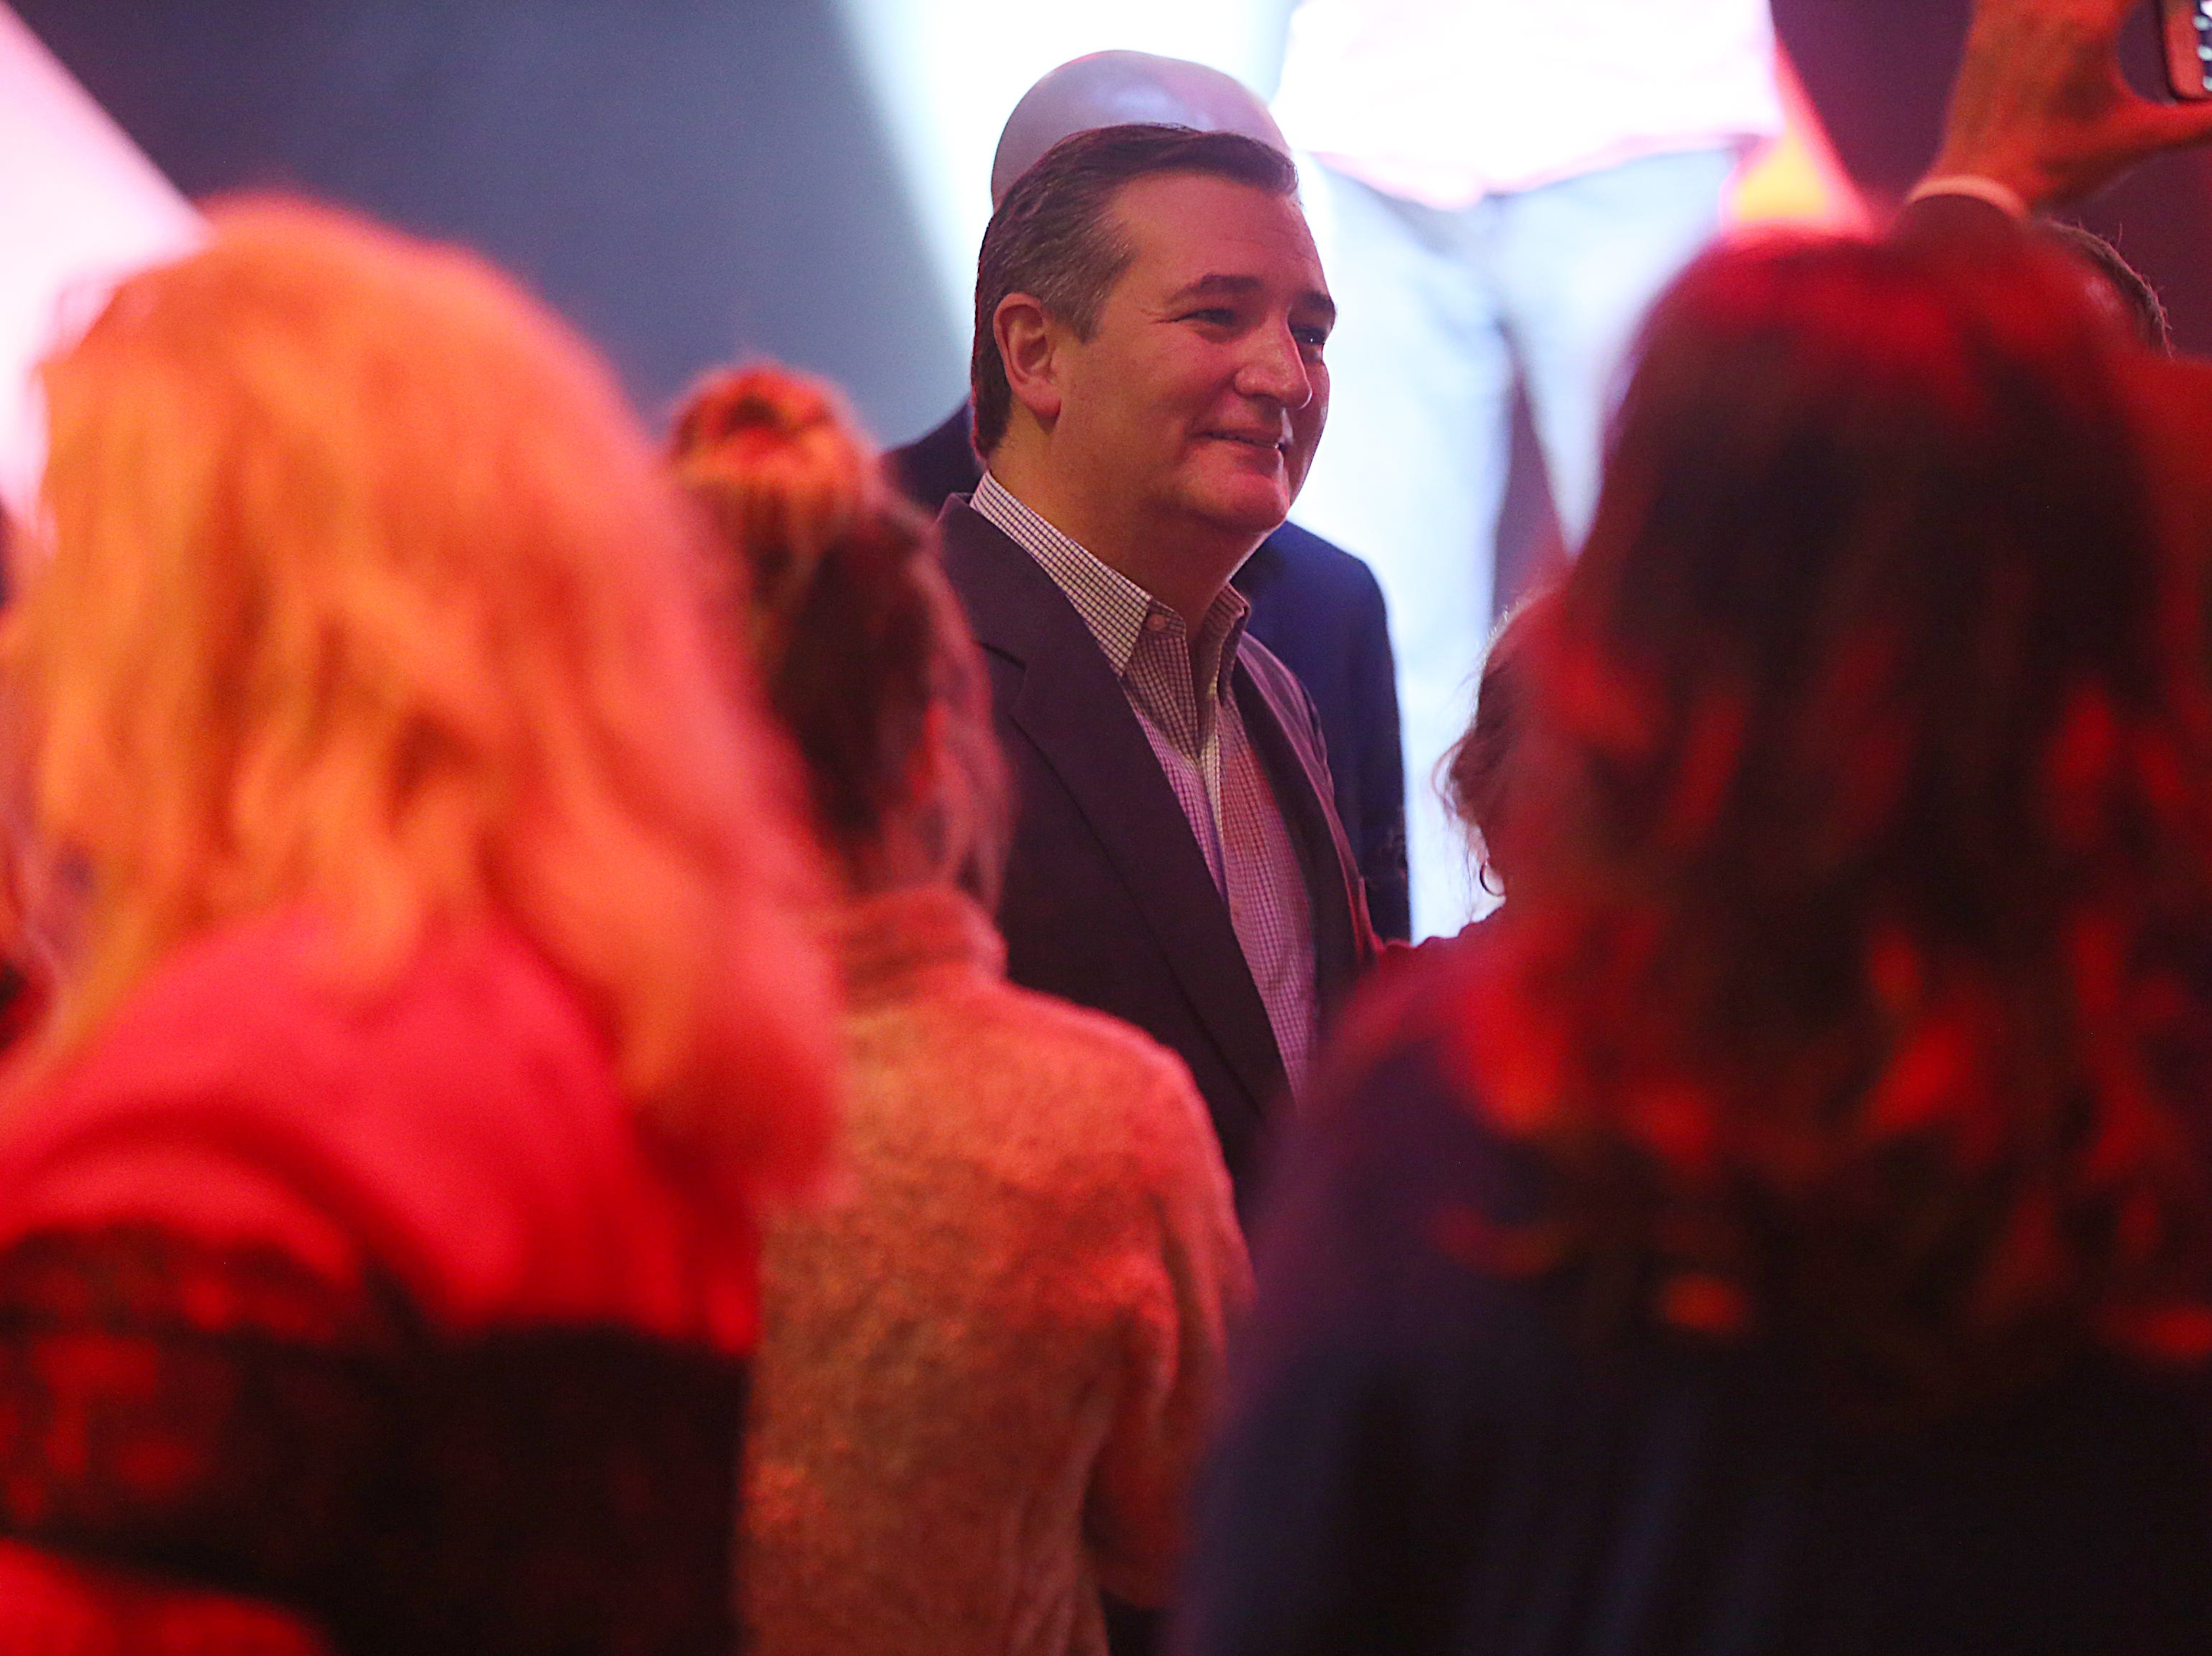 Sen. Ted Cruz poses for photos with supporters Tuesday, Oct. 30, 2018, during his campaign stop at The Life Church in San Angelo.